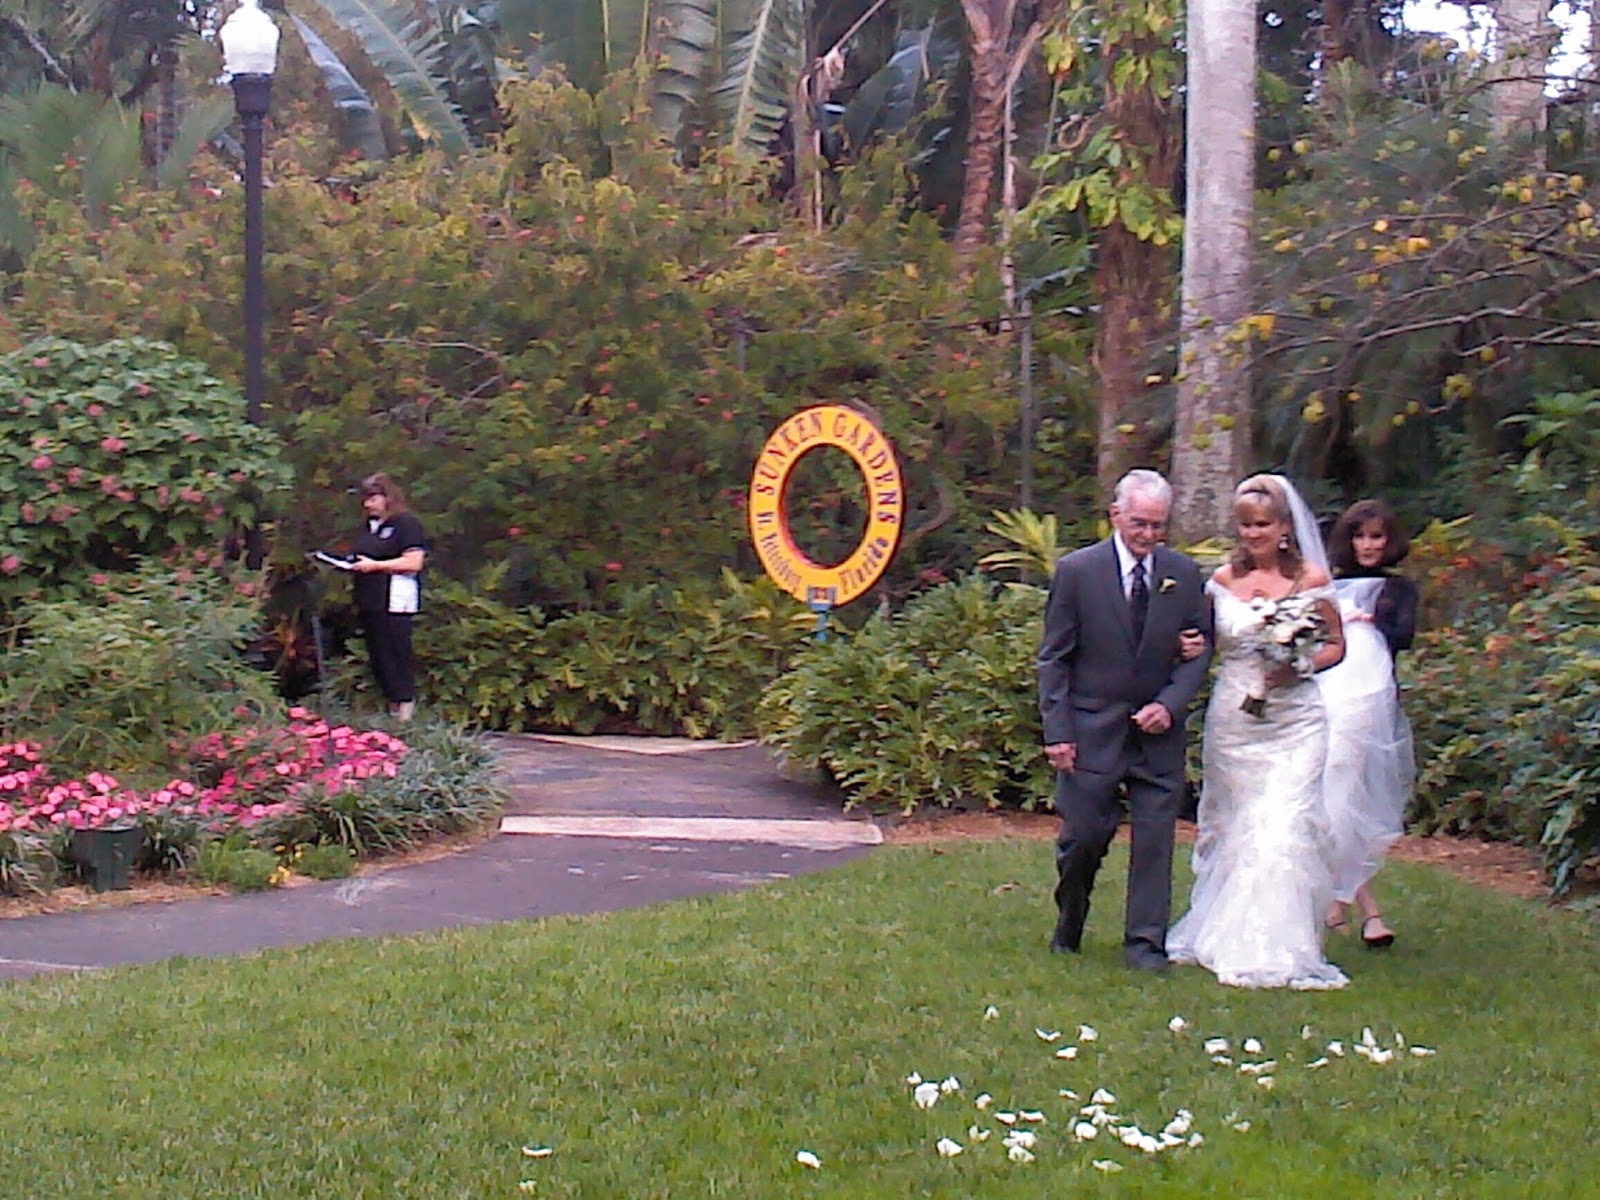 Music On The Move: DJ Entertainment for a Wedding at Sunken Gardens ...